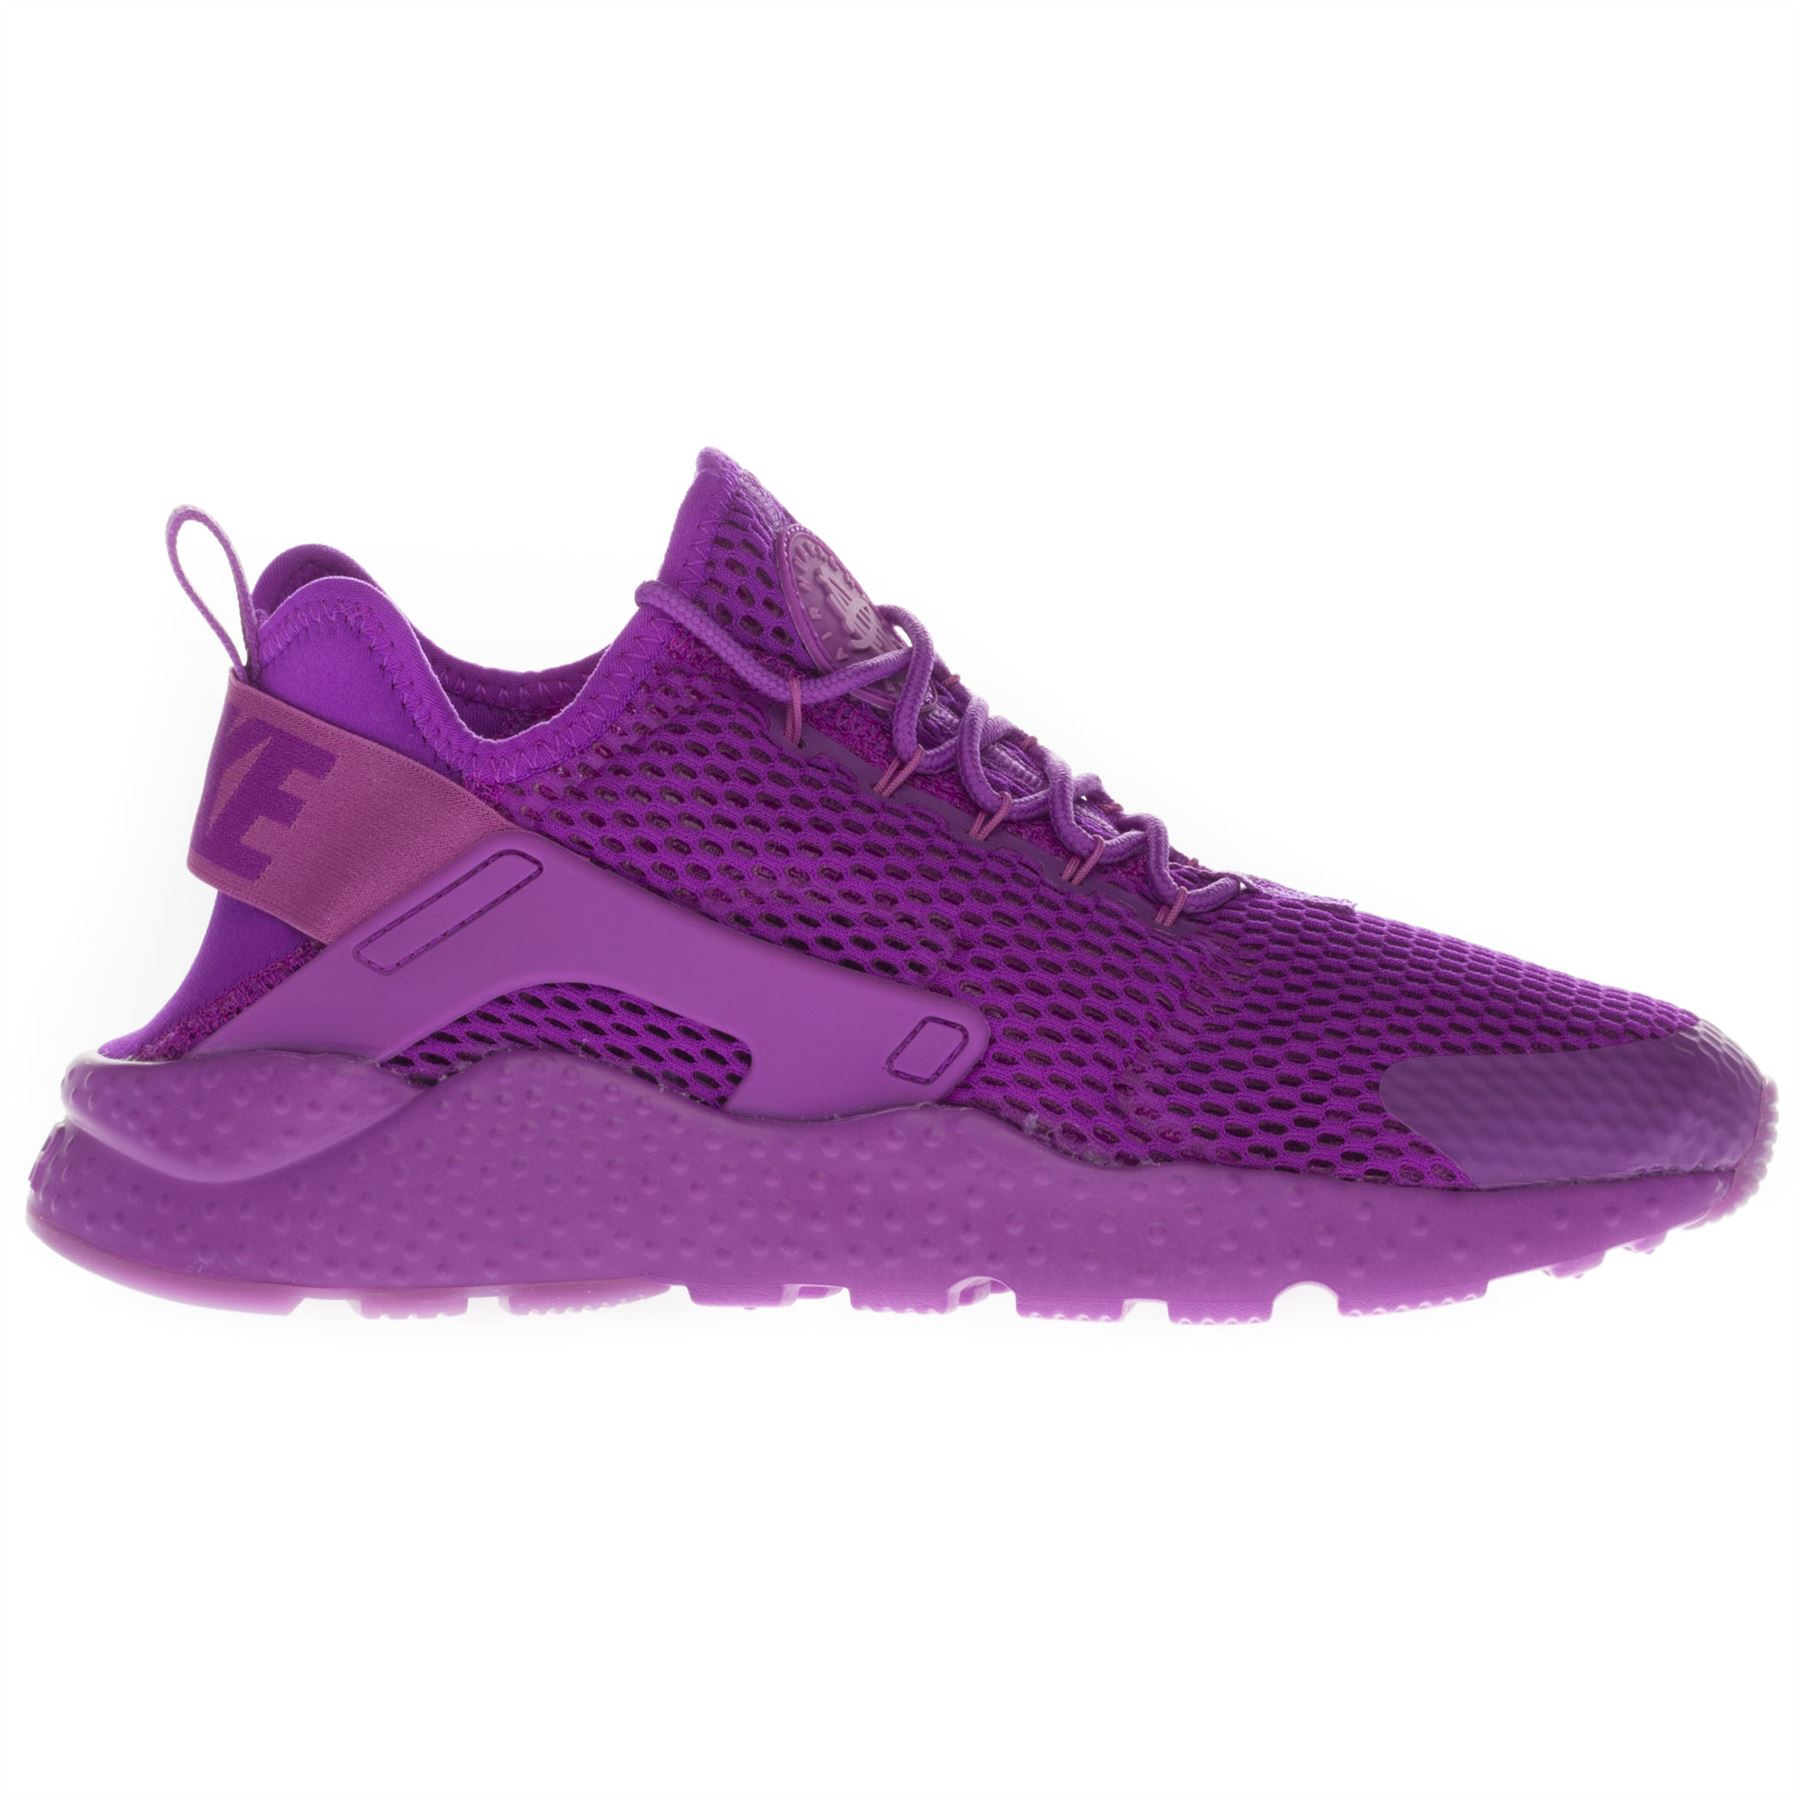 Nike-Women-039-s-Air-Huarache-Run-Ultra-Low-Top-Running-Sports-White-Purple-Trainers